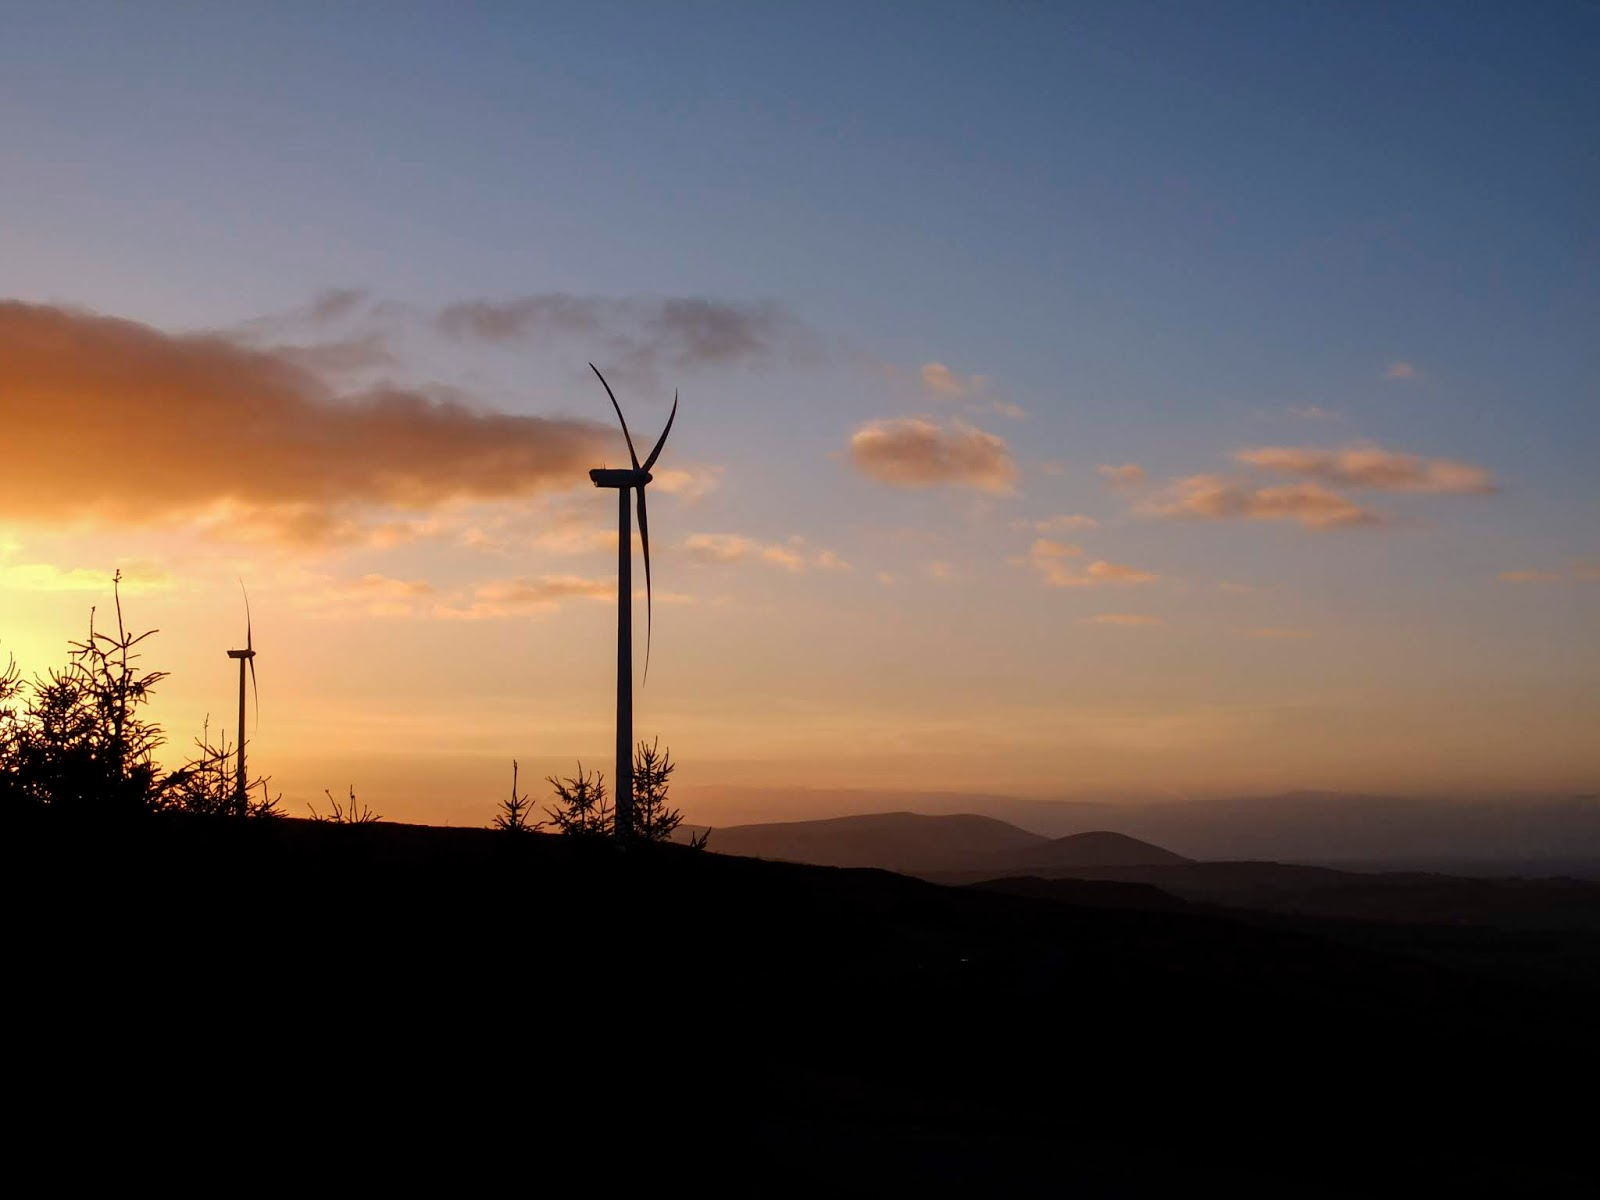 A mountain and windmill landscape at sunset in North County Cork.